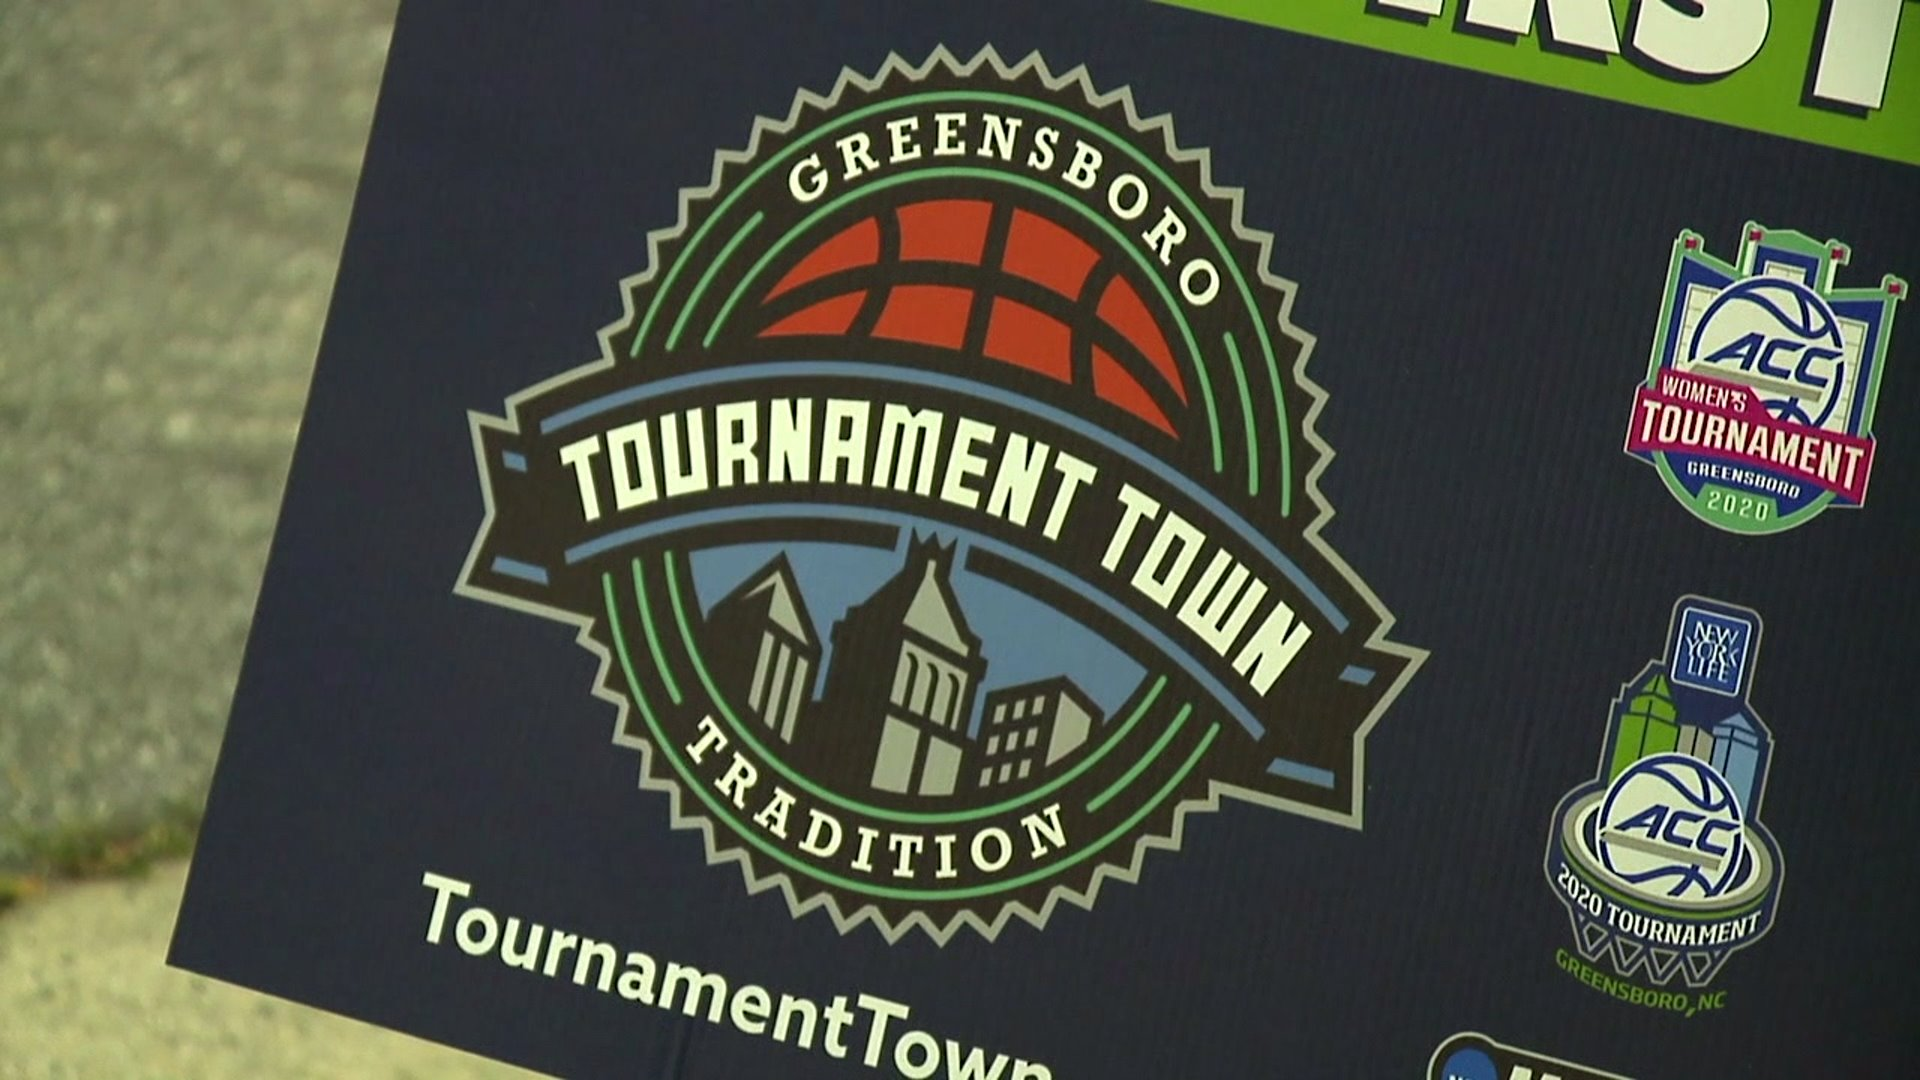 ACC limits attendance for remainder of men`s basketball tournament at Greensboro Coliseum over coronavirus concerns